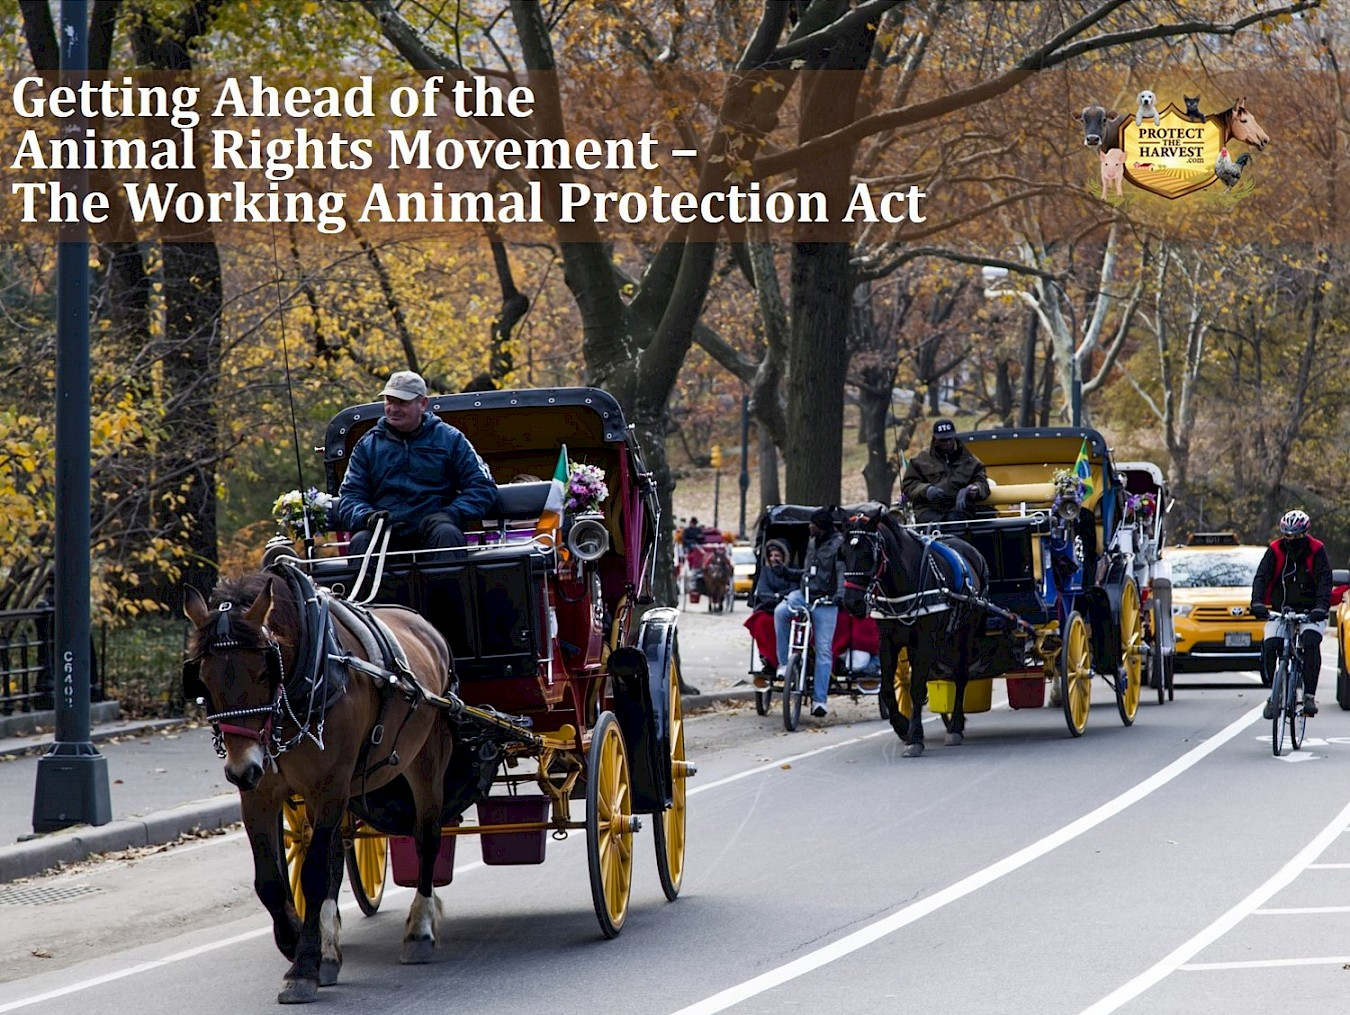 Getting Ahead of the Animal Rights Movement - Working Animal Protection Act